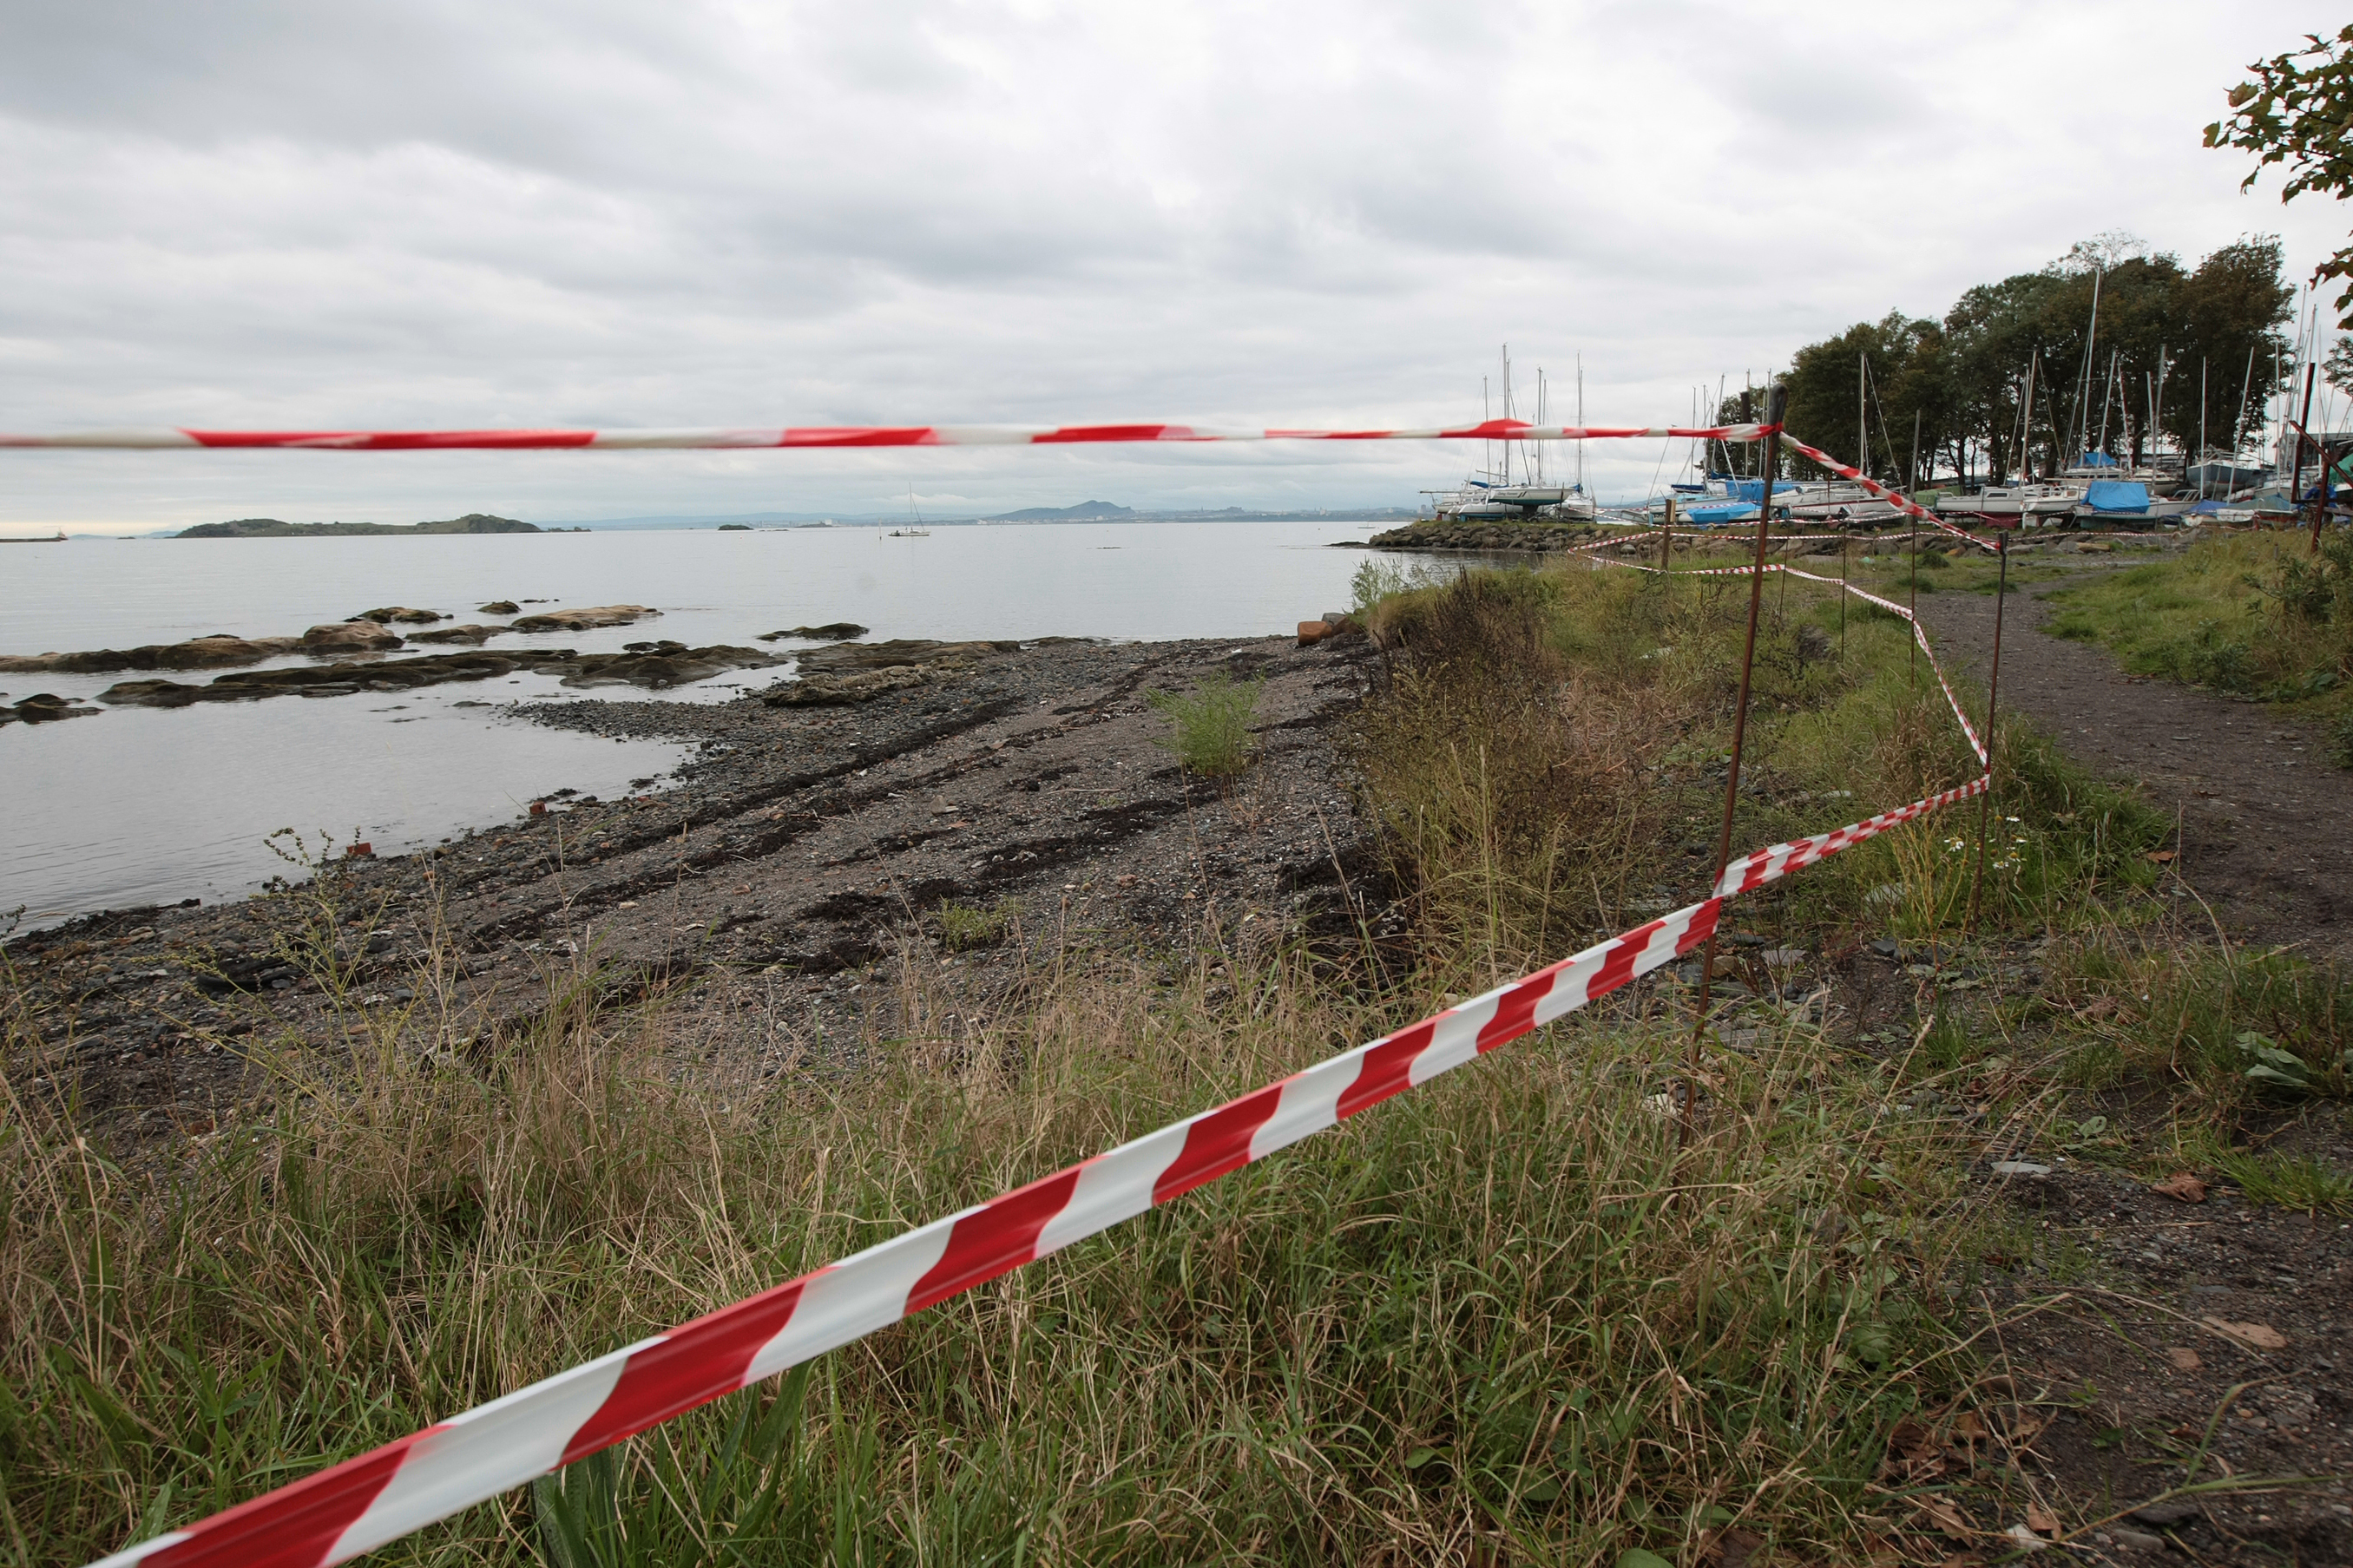 Part of the beach at Dalgety Bay where radioactive particles were found.